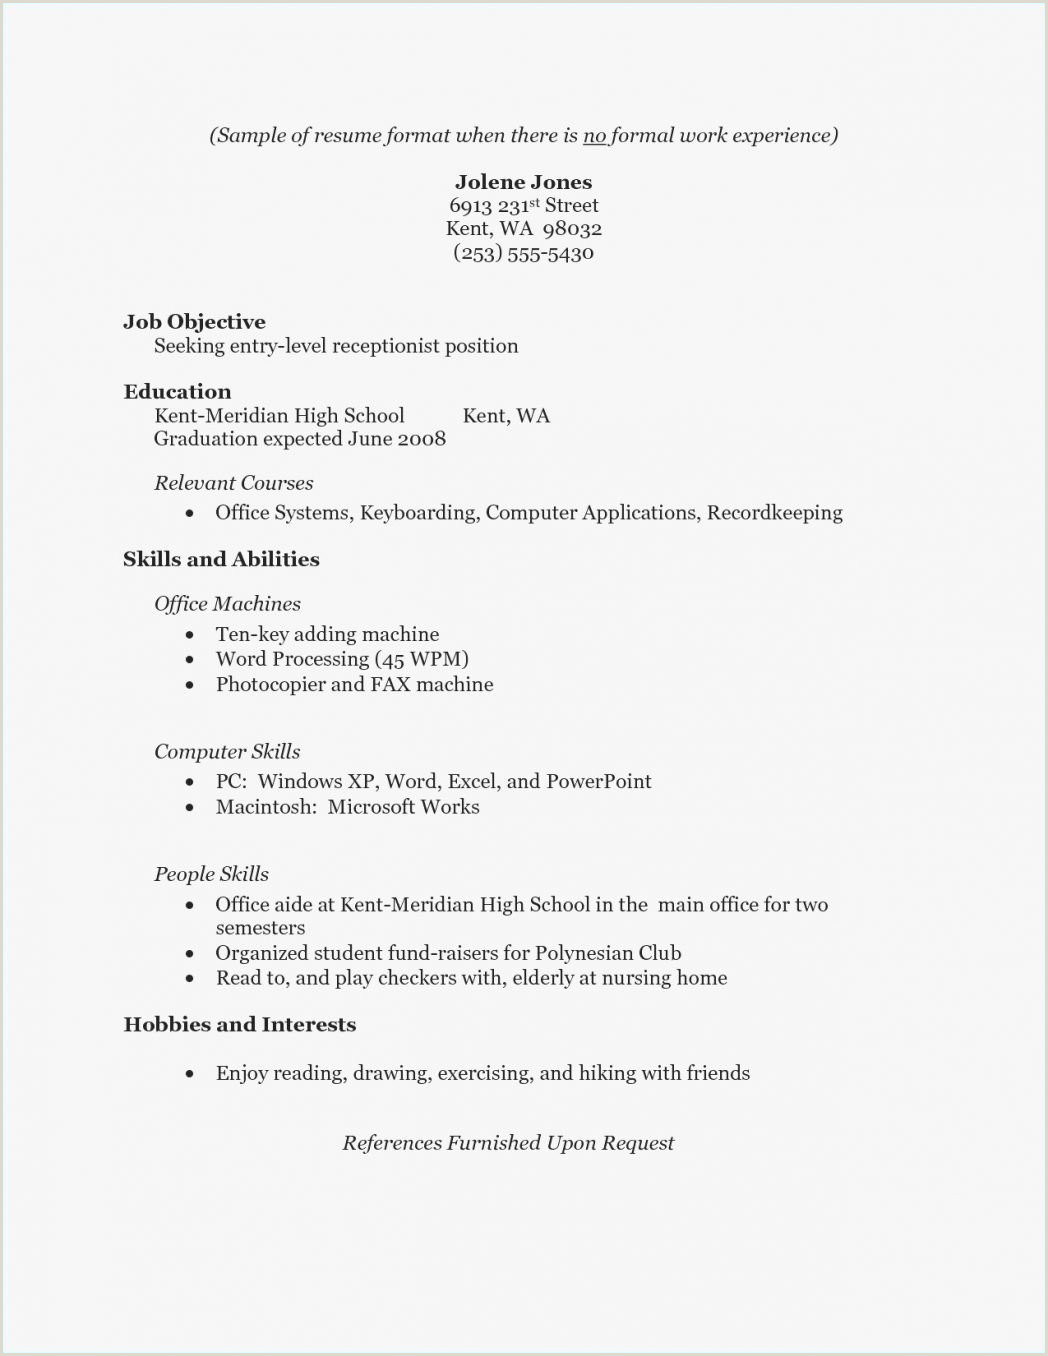 Career Objective for Customer Service Resume for Receptionist with No Experience Unique Nanny